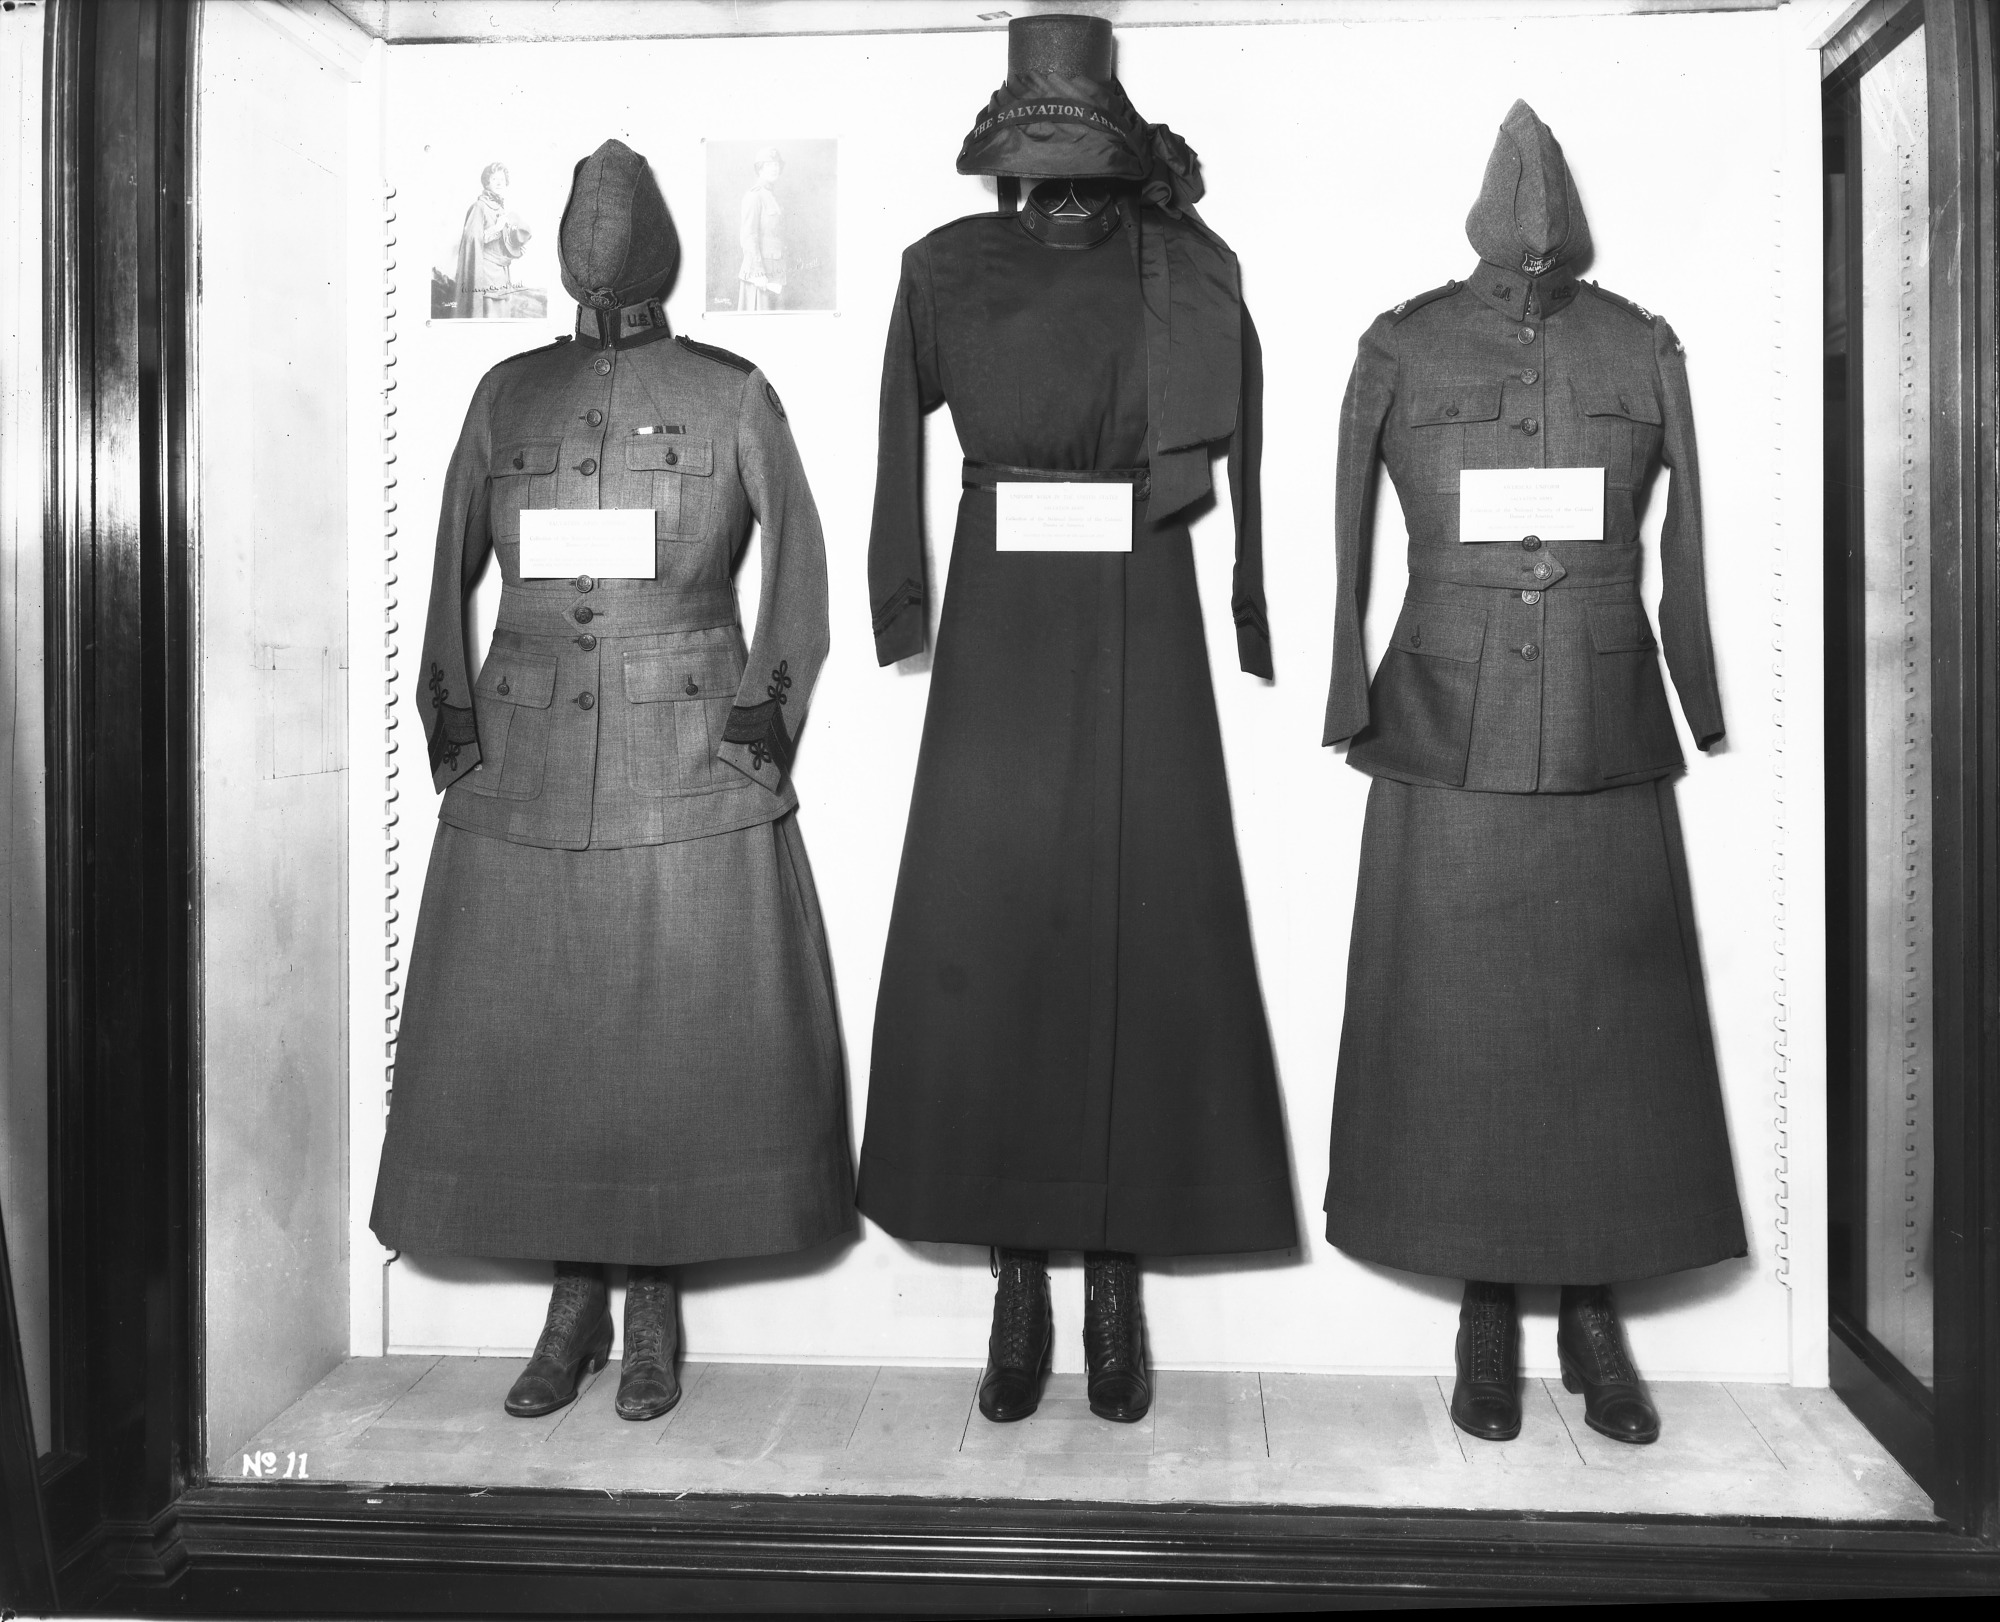 Left To Right Generals Uniform Salvation Army US Overseas